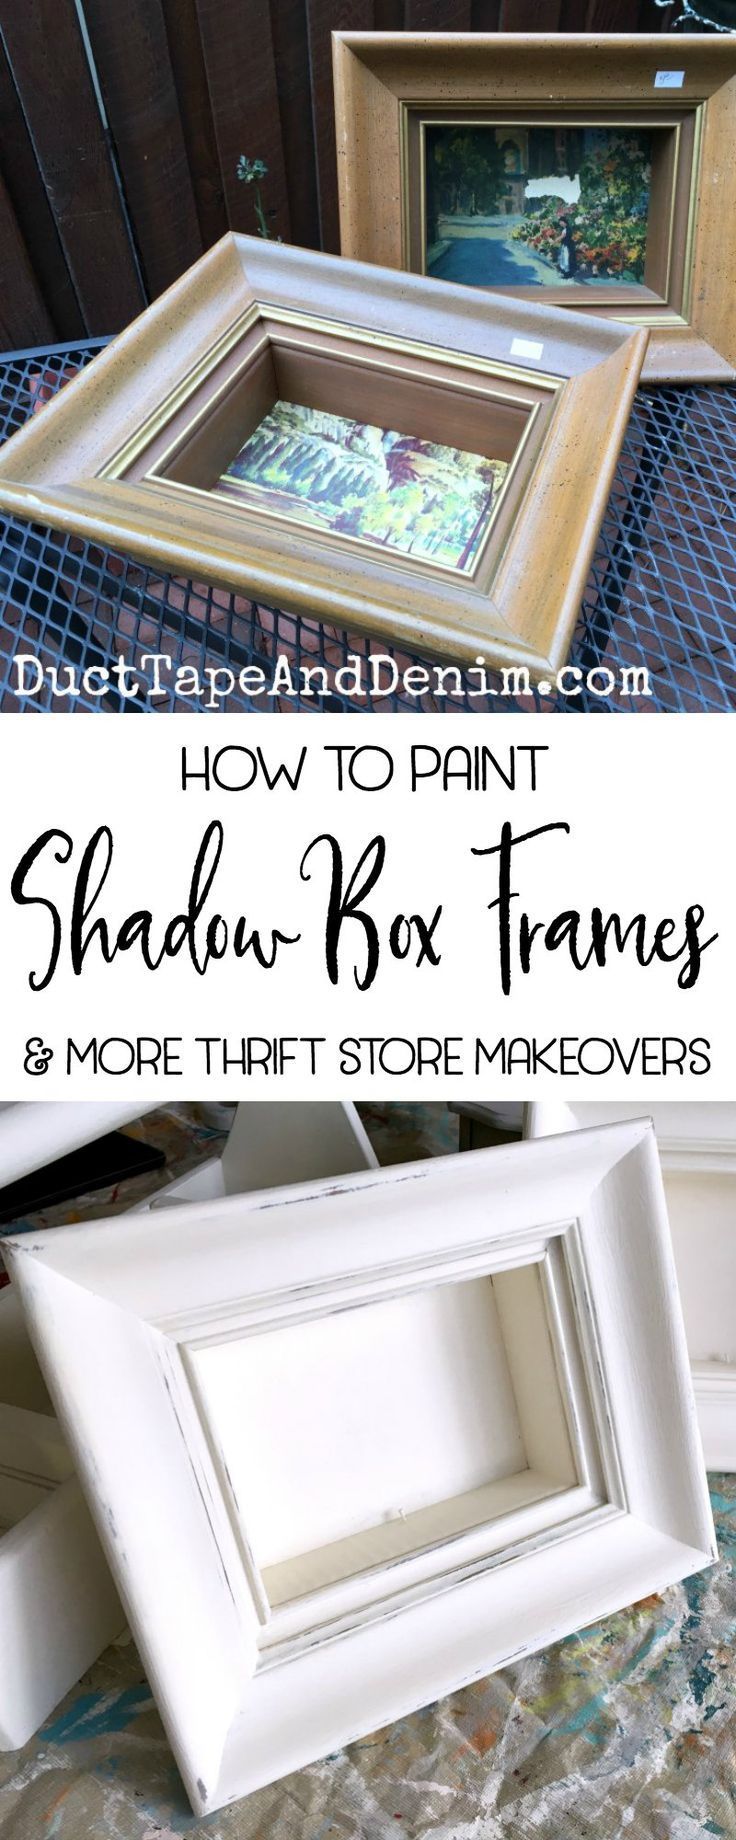 Home interior frames how to paint shadow box frames to display vintage collections u our